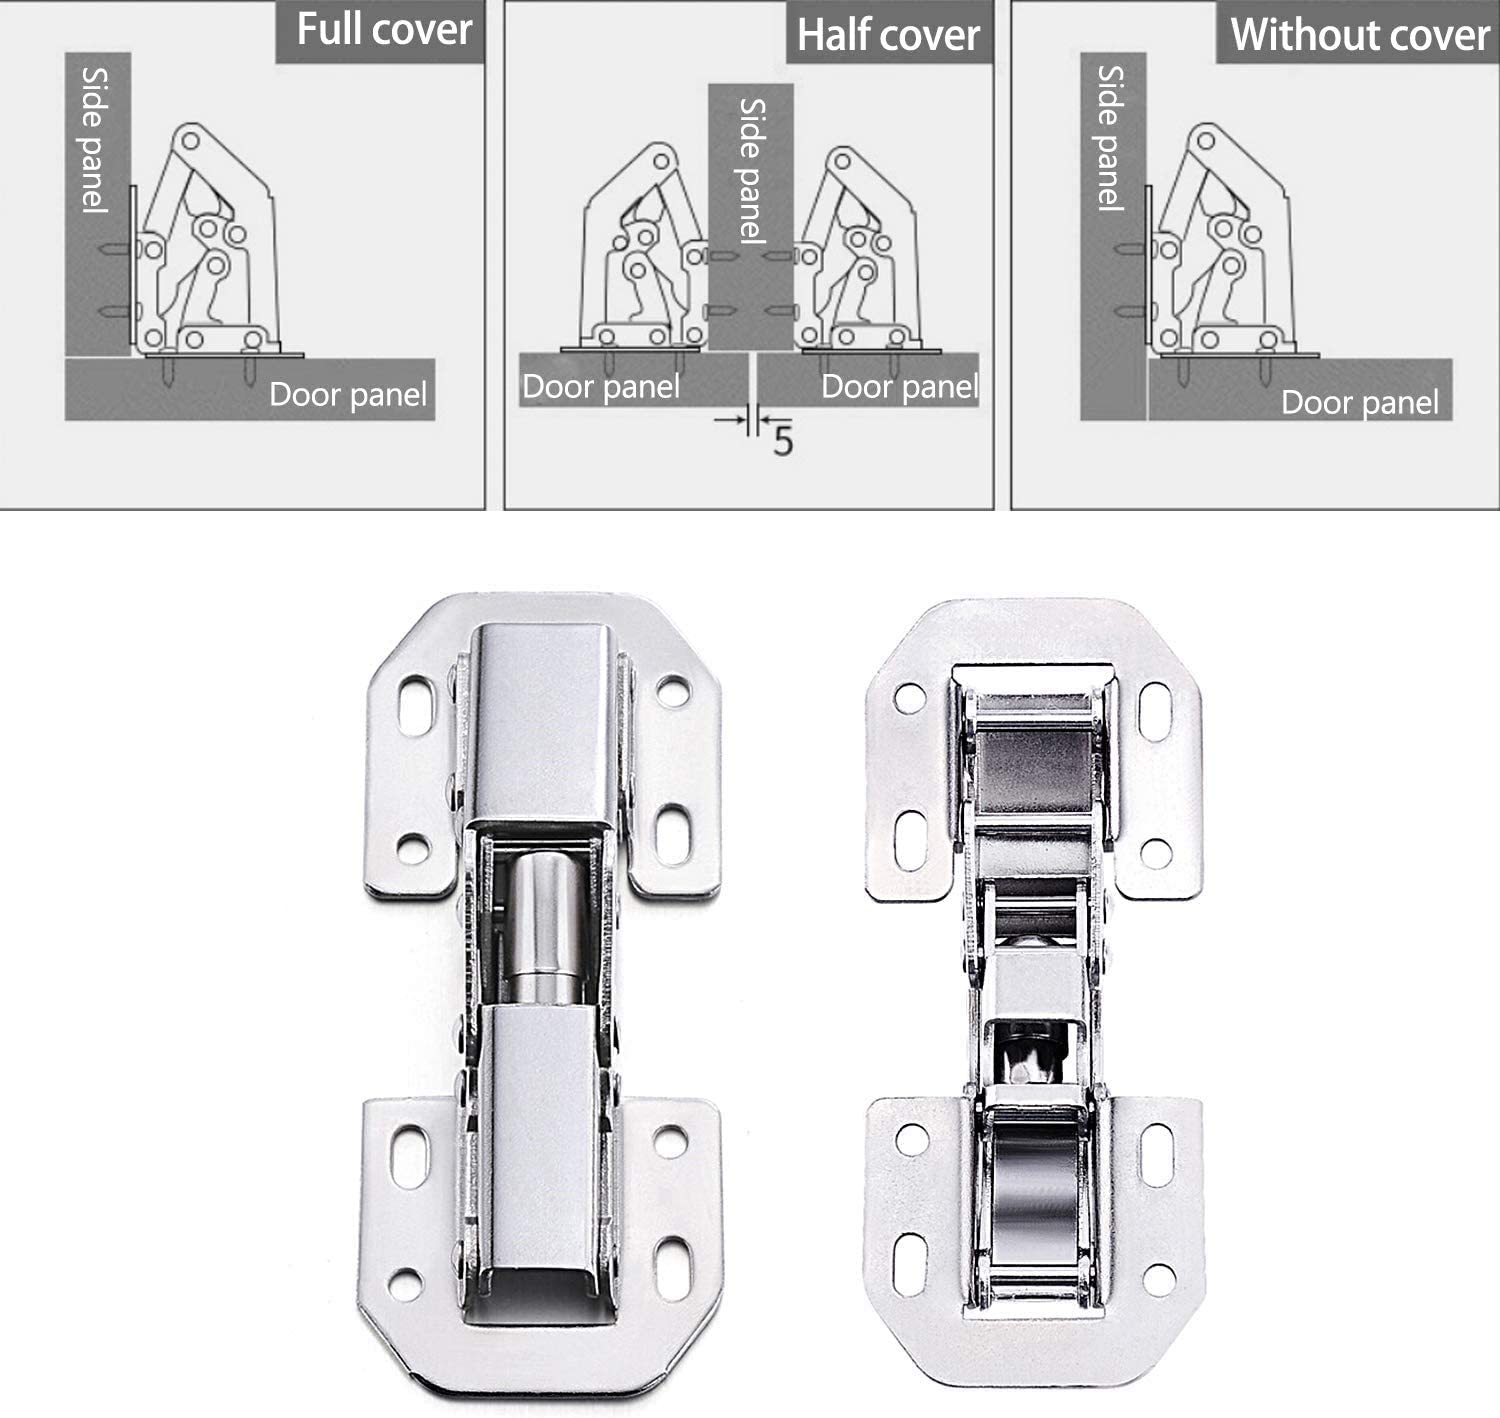 ZILONG 8pcs Kitchen Cabinet Door Hydraulic Hinge Damper Buffer 90 Degrees No Slot Required Soft-Close Stainless Steel Hinge